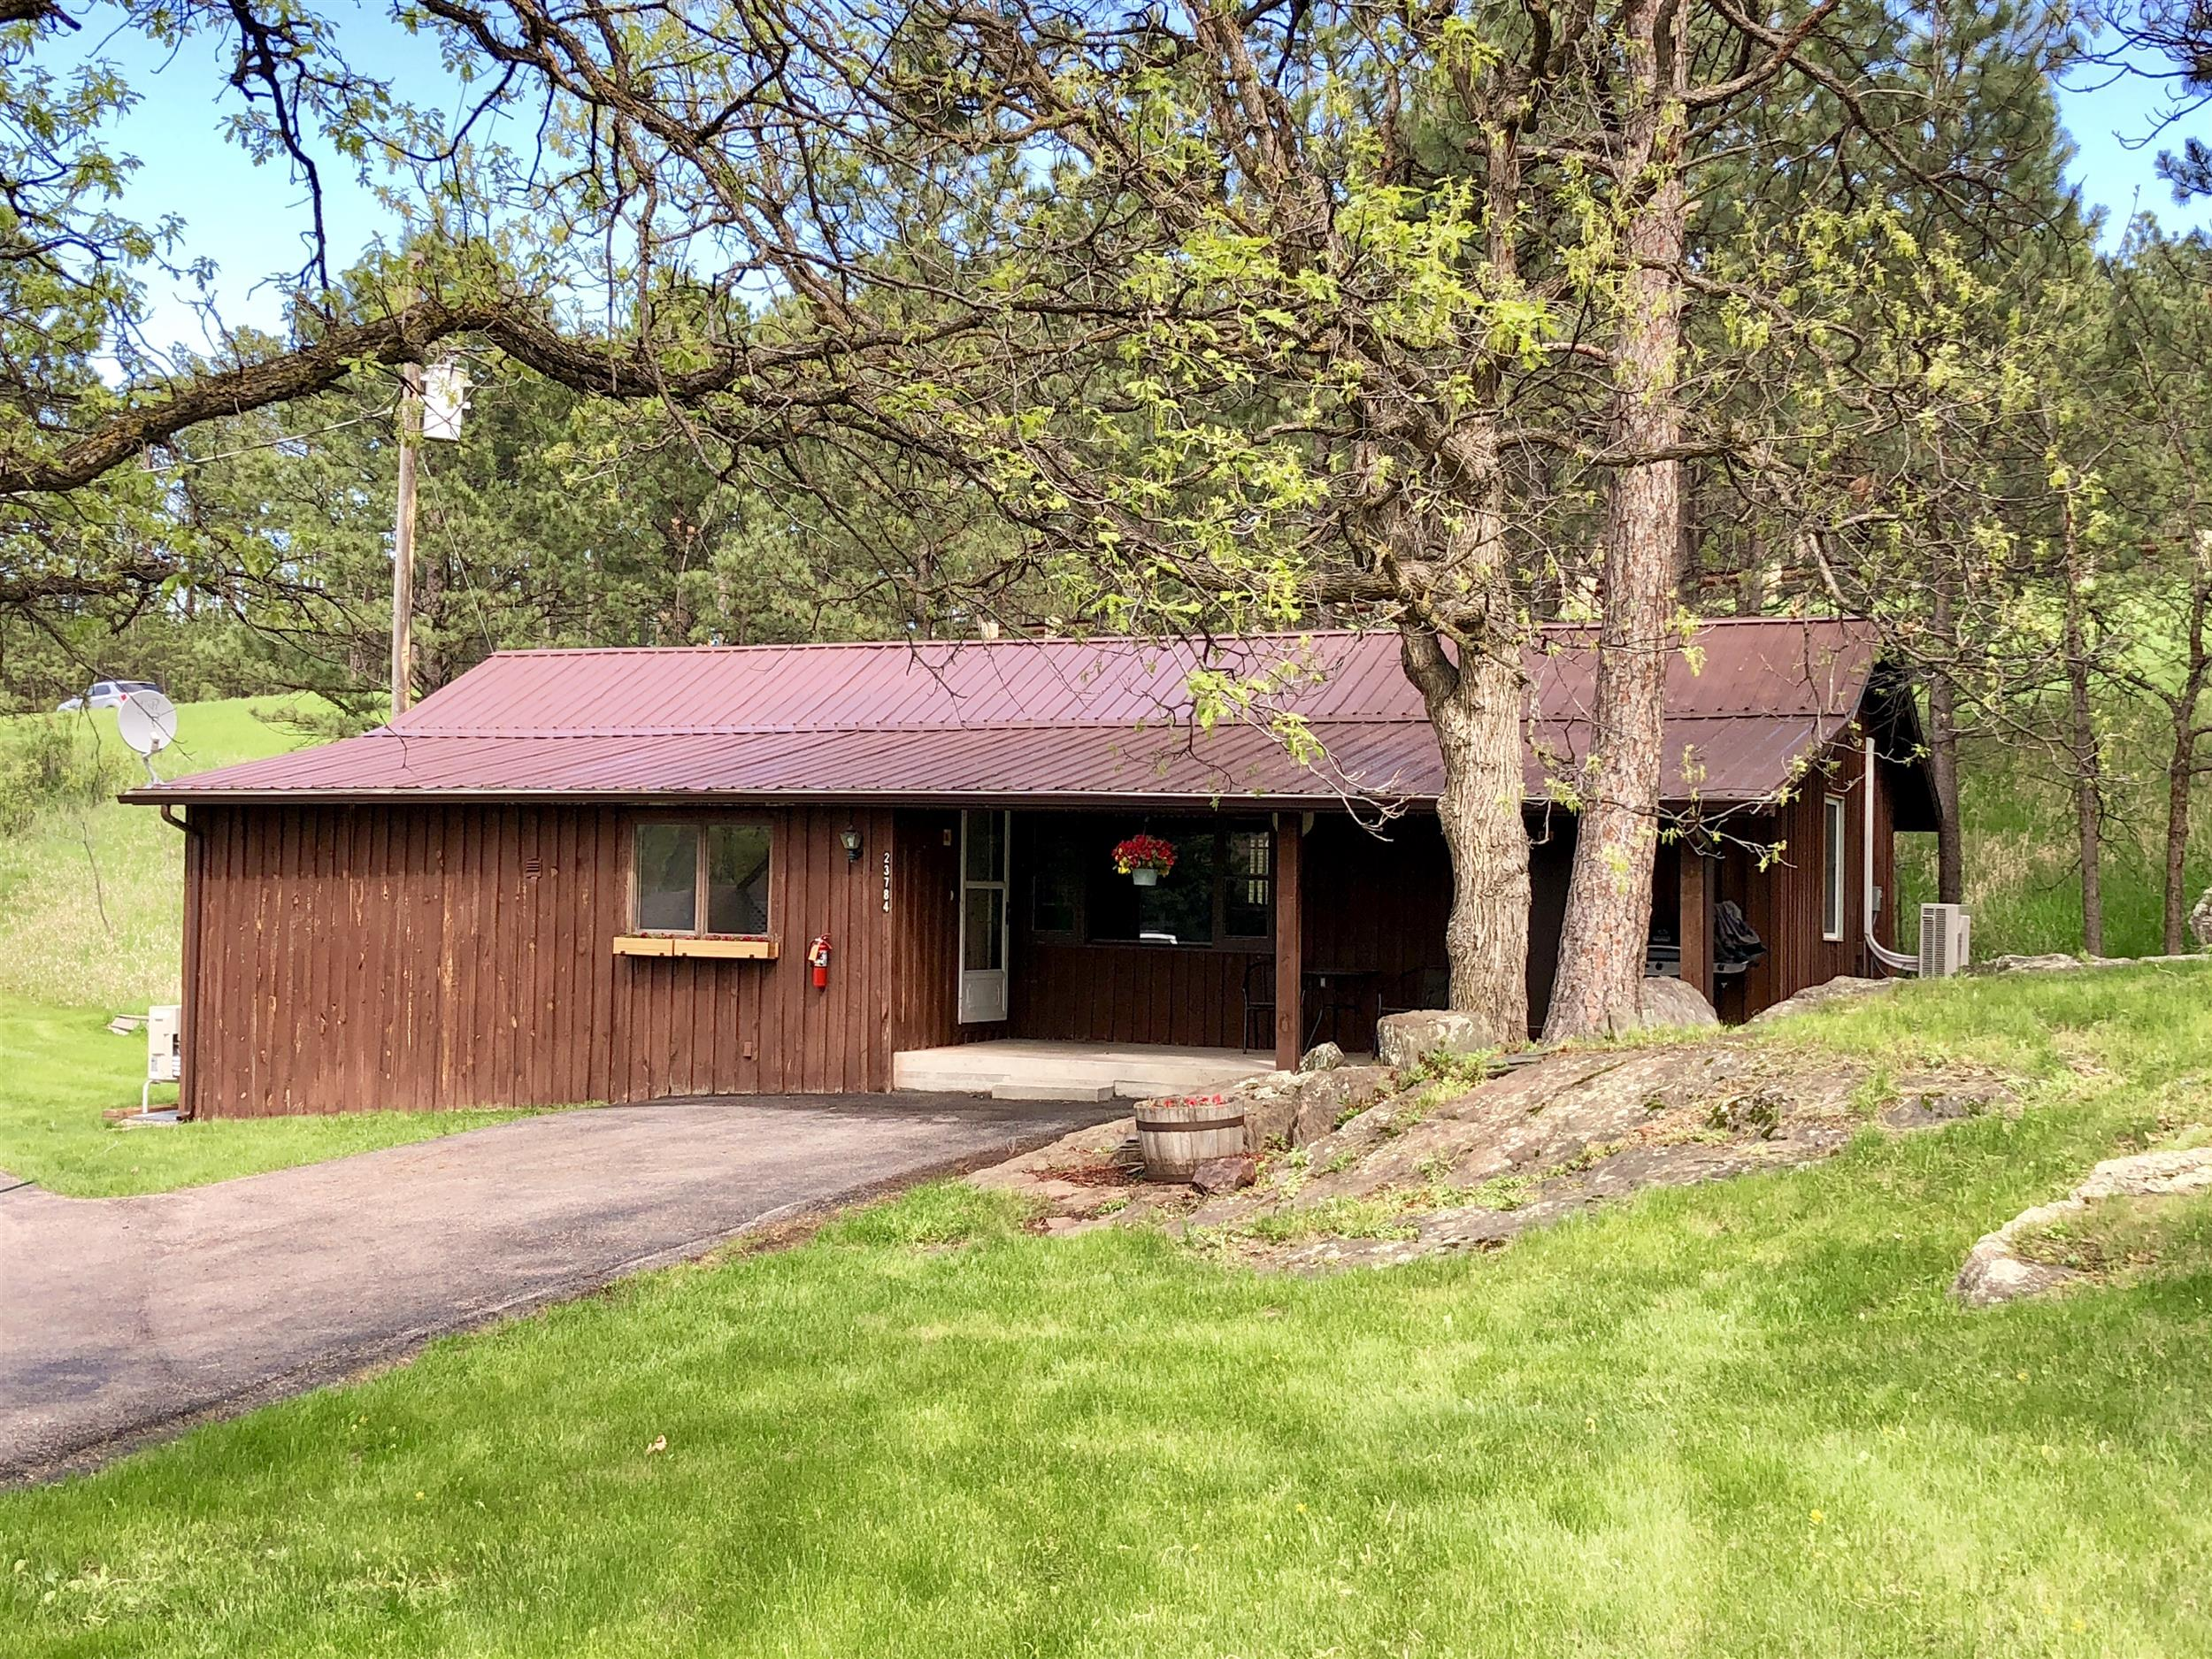 Image for 18 - 19 Bunkhouse Multi-Family Cabin with Loft,  Sleeps 10